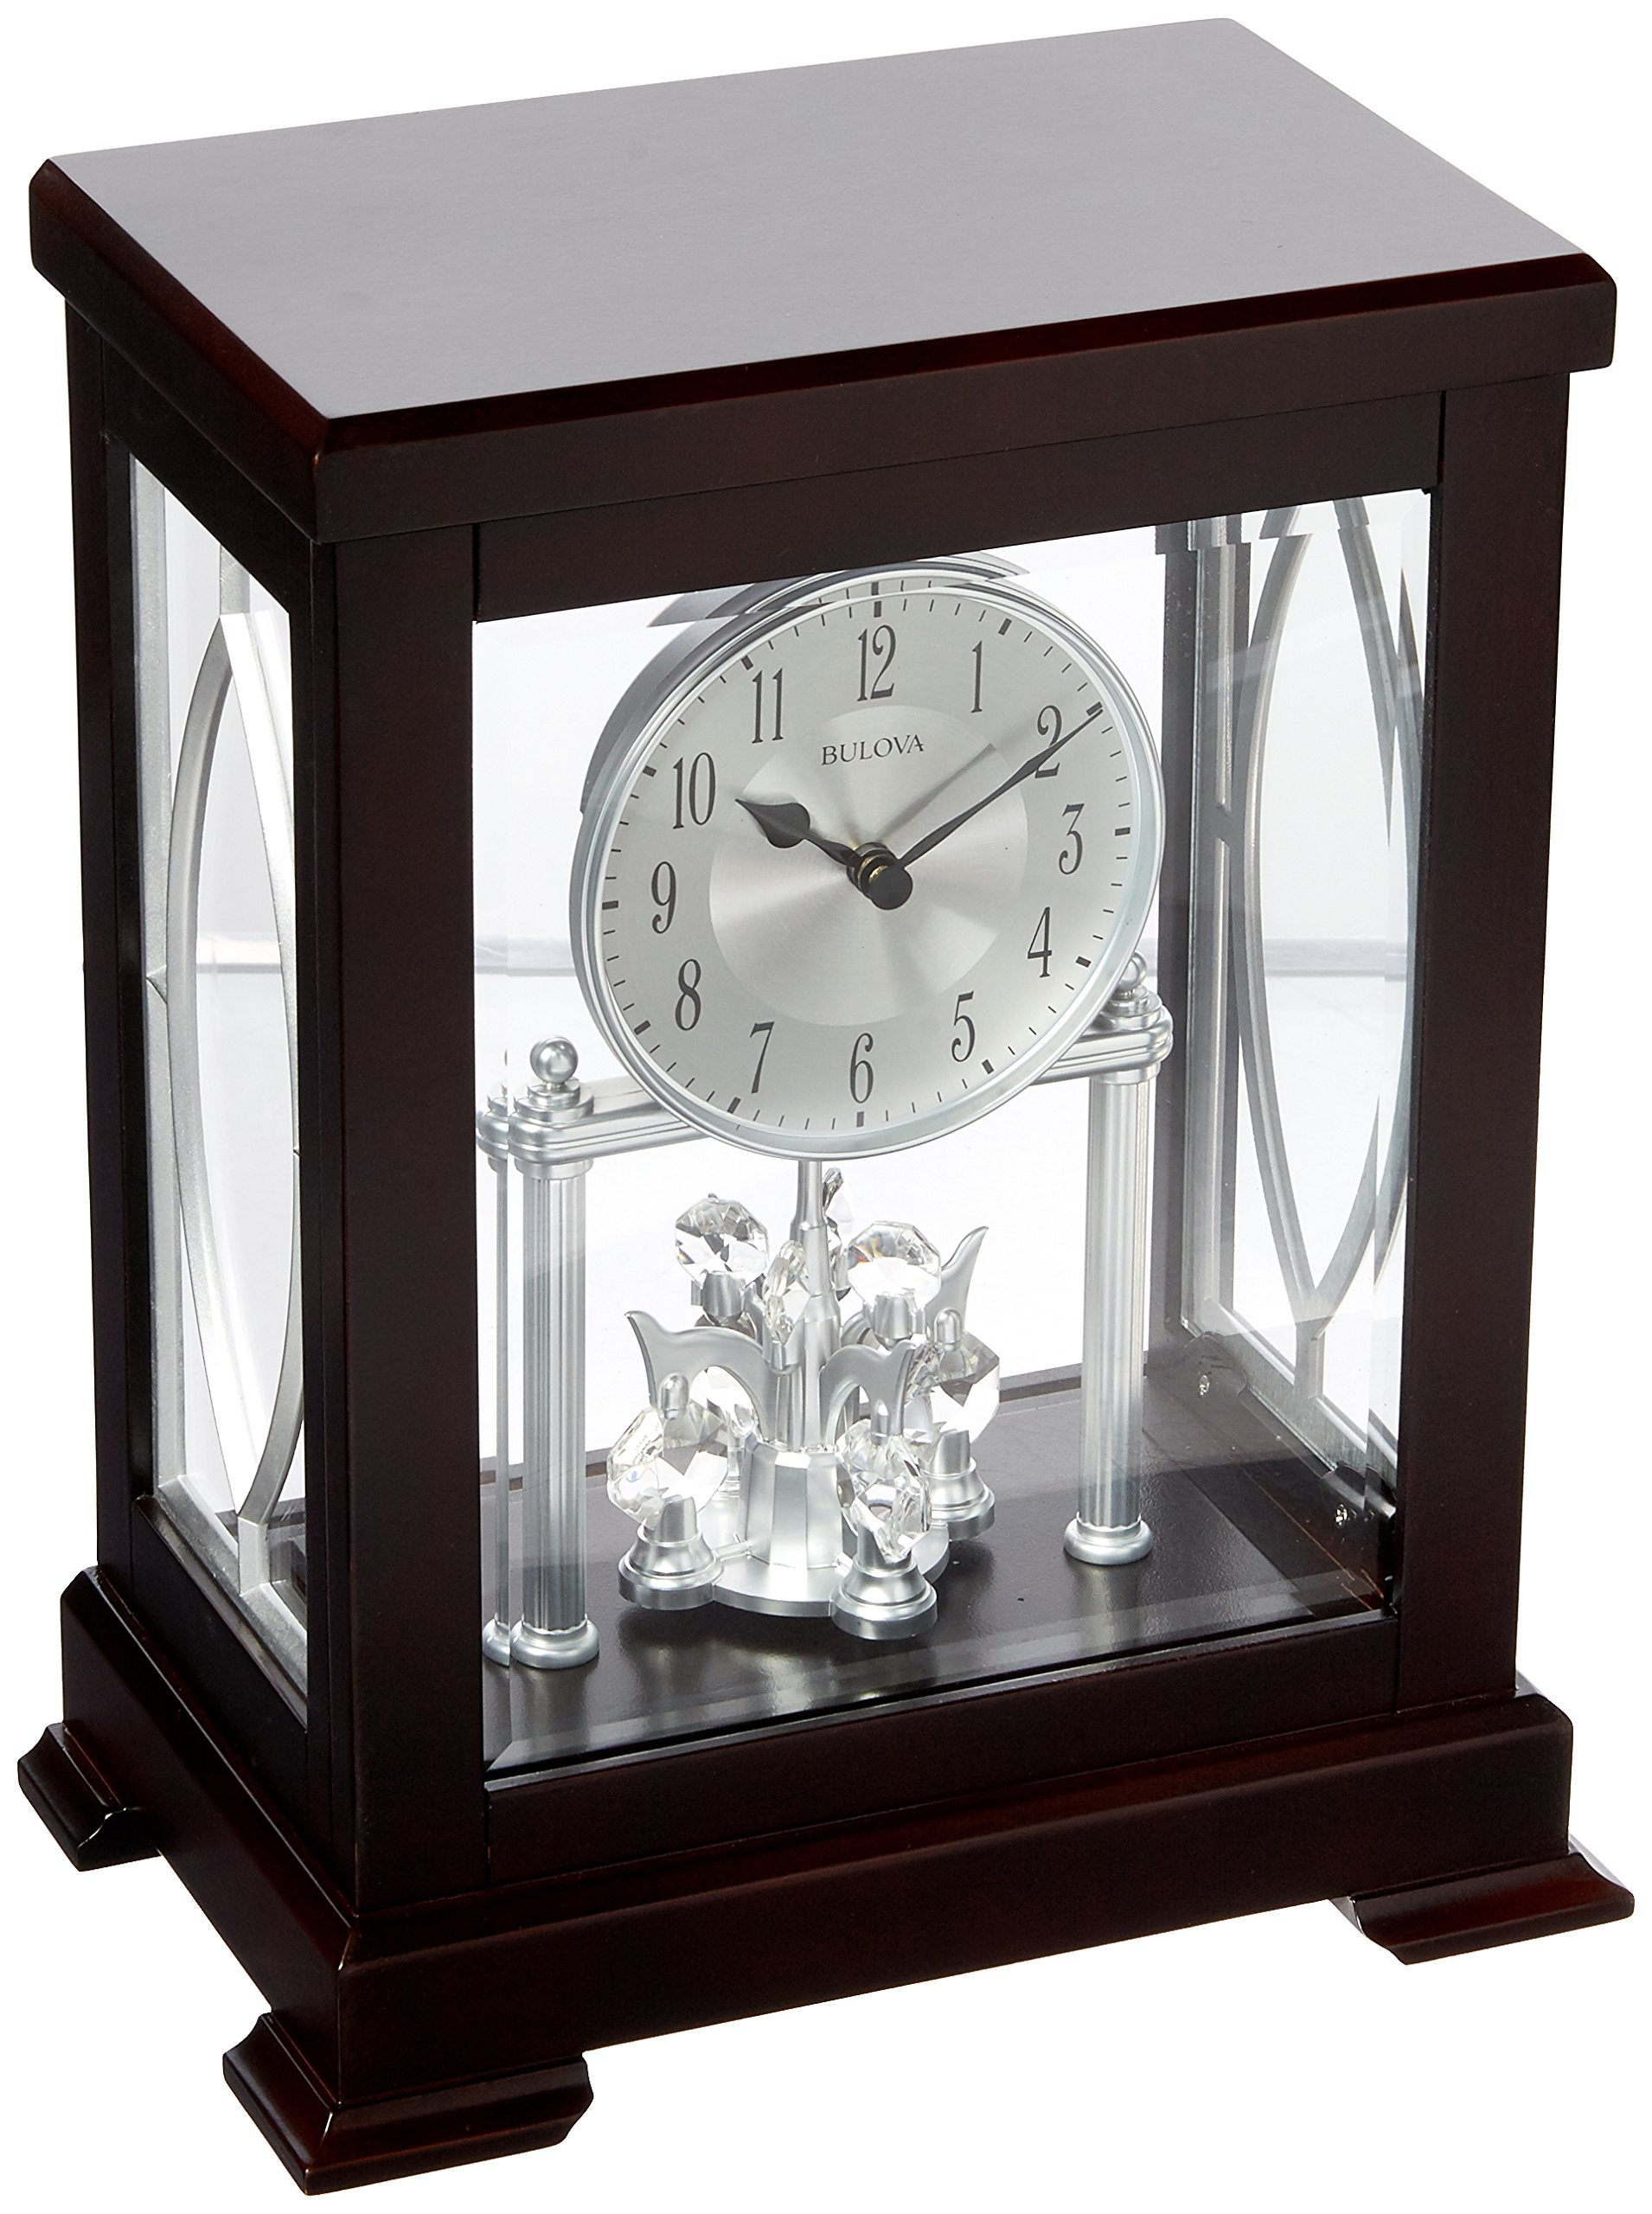 Bulova Empire Anniversary Mantel Clock, Brown by Bulova